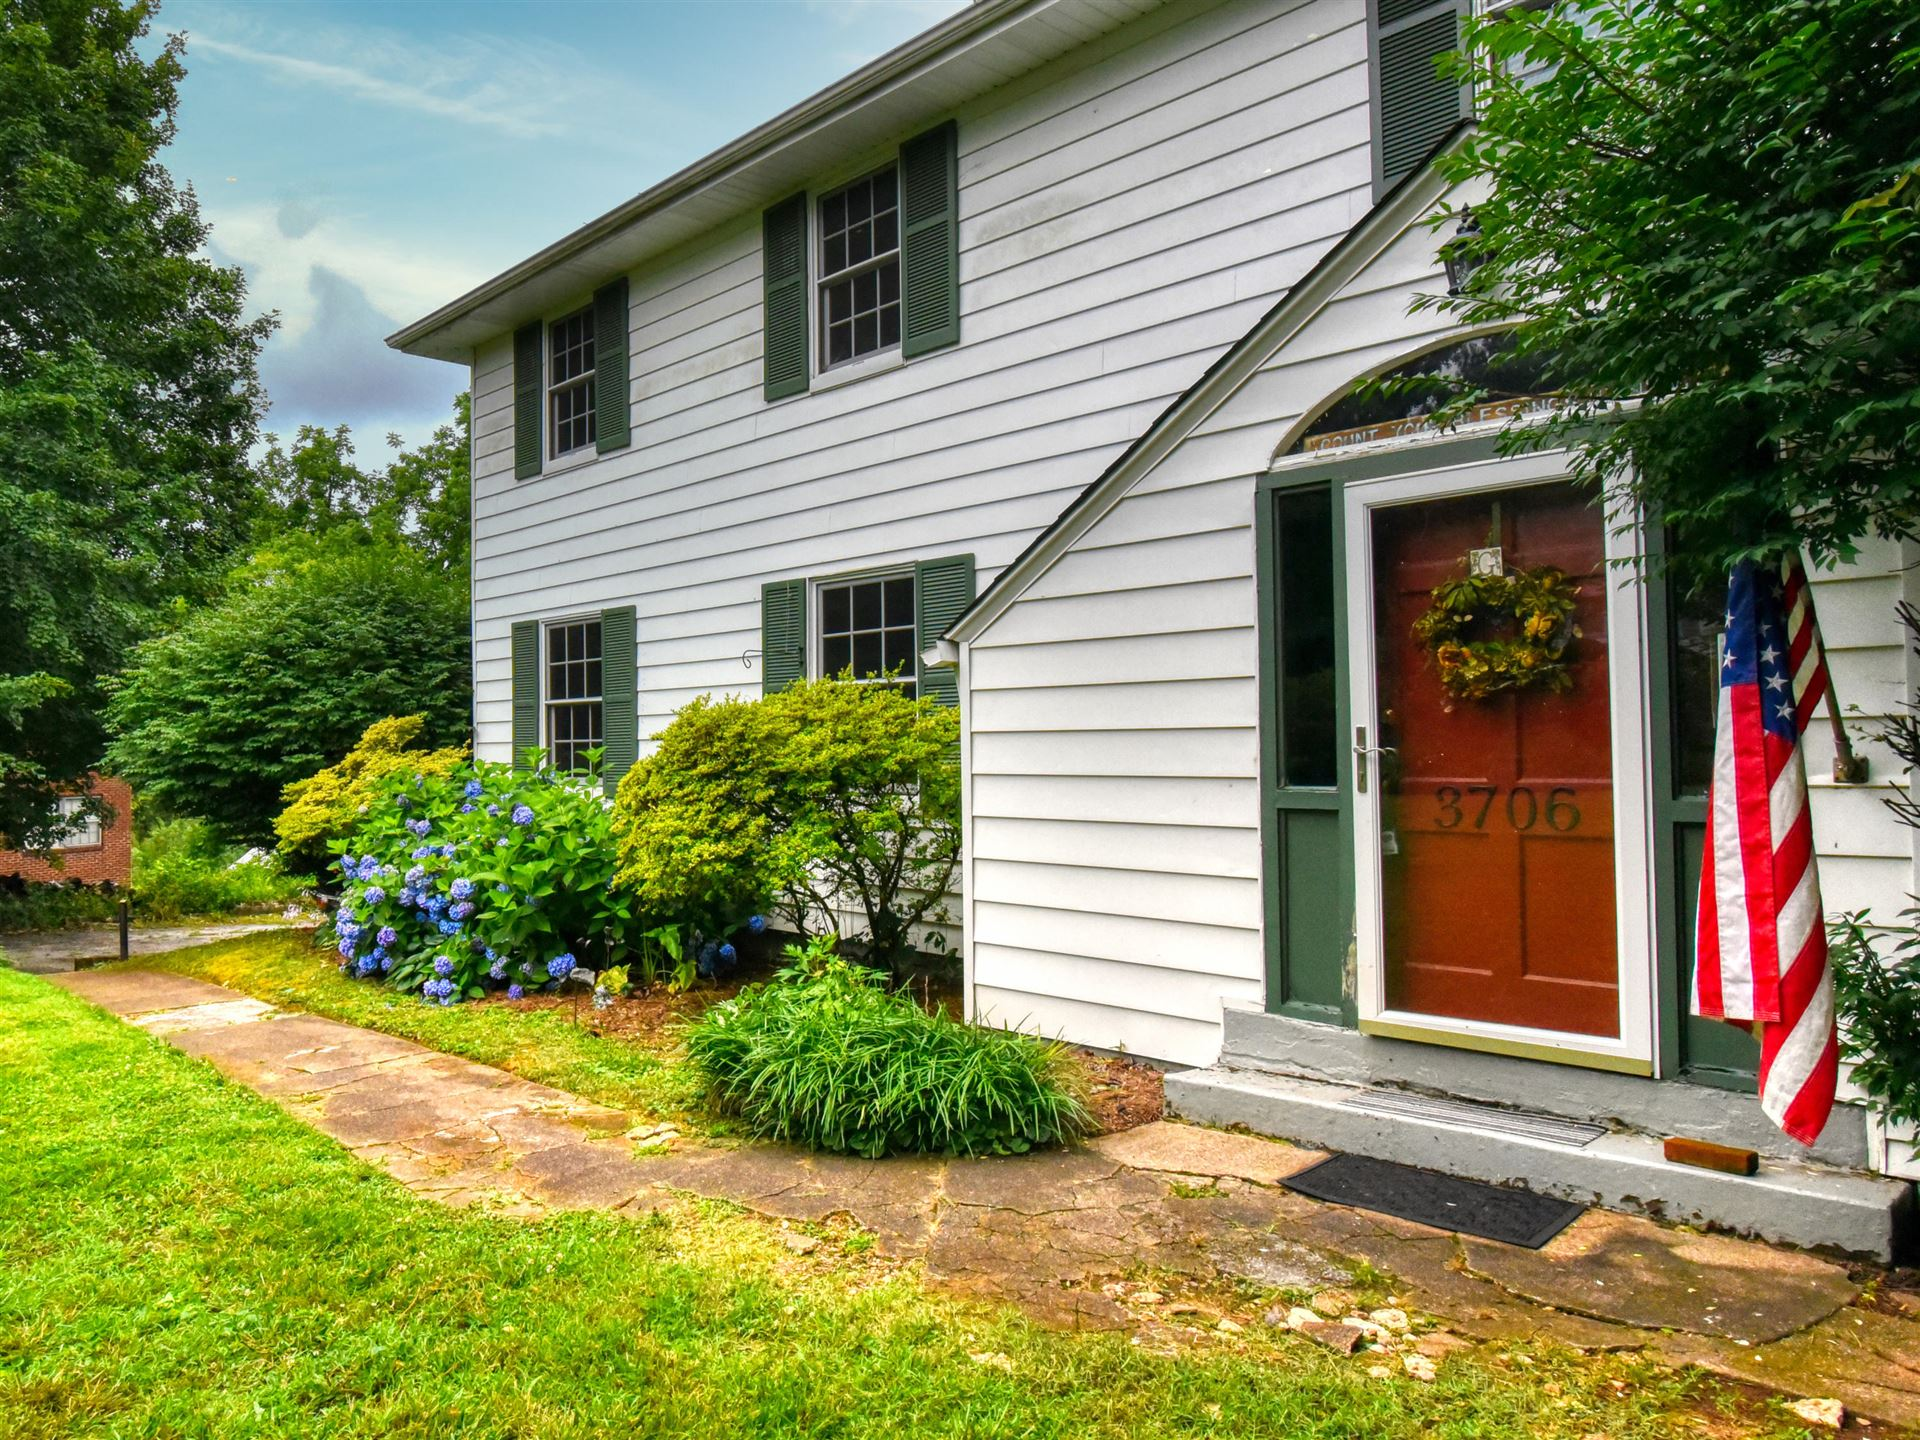 Photo of 3706 Terrace View Drive, Knoxville, TN 37918 (MLS # 1122094)